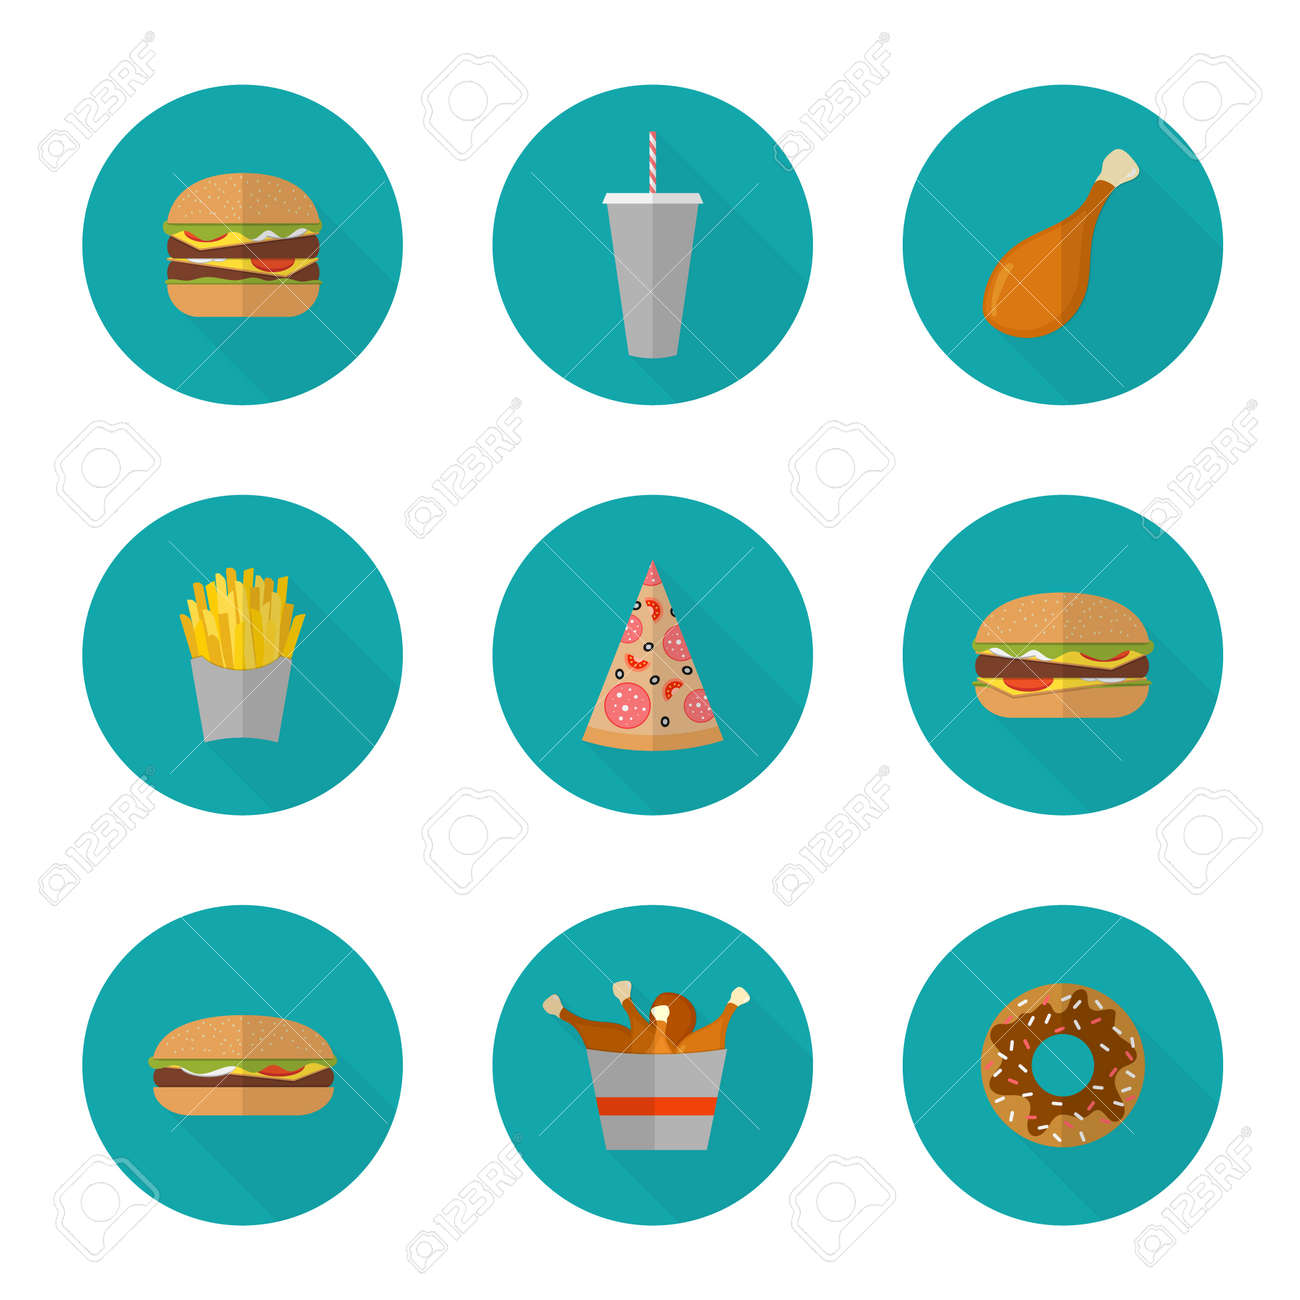 Fast food icon design. Flat icons of junk food isolated on white. Illustration of unhealthy food, diet or restaurant menu elements. Hamburger, cheeseburger, fried chicken, french fries, pizza, donut. - 45892675